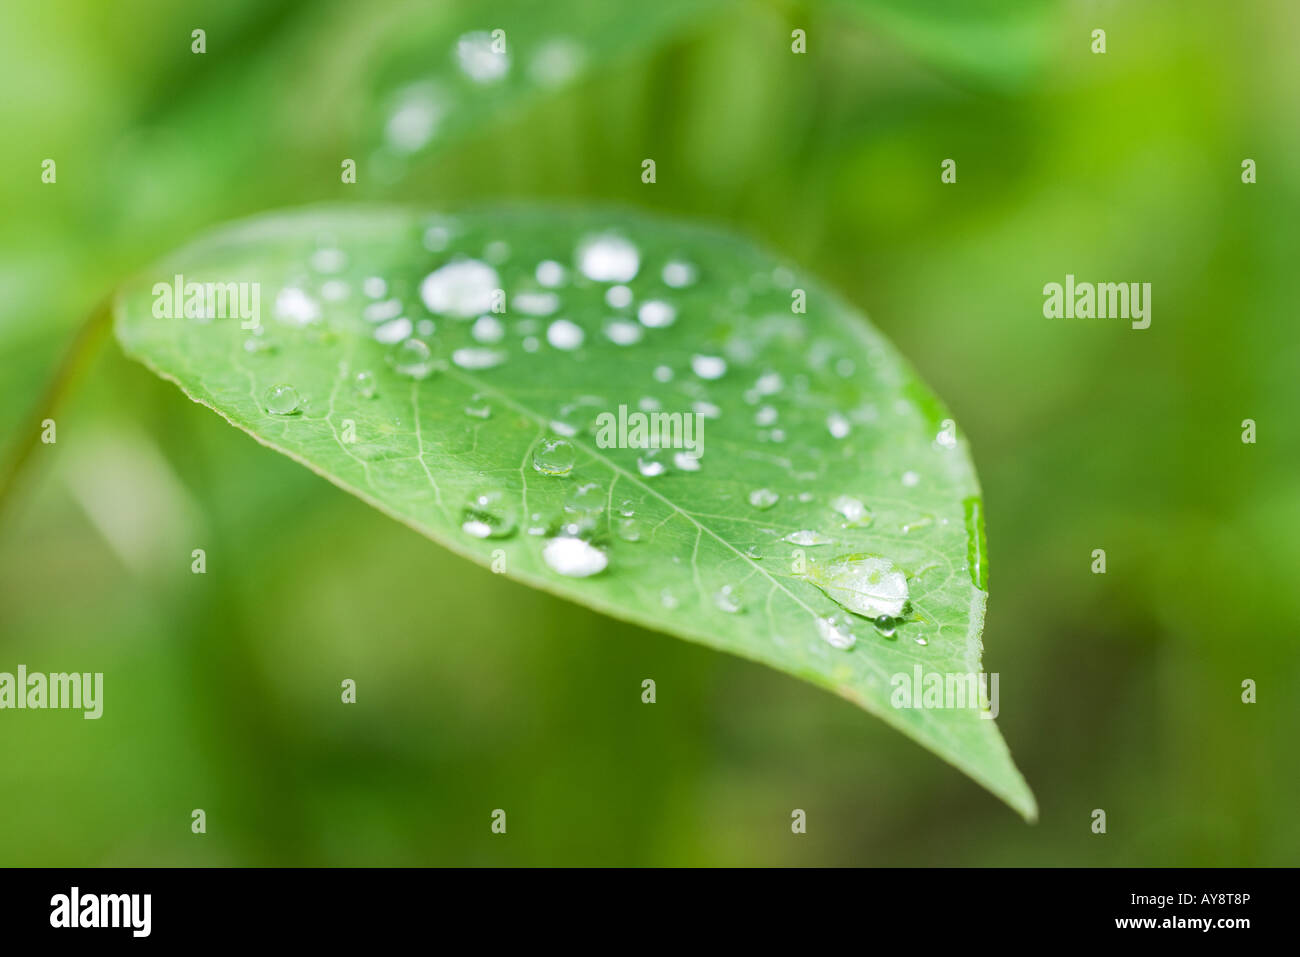 Dew drops on leaf, extreme close-up - Stock Image